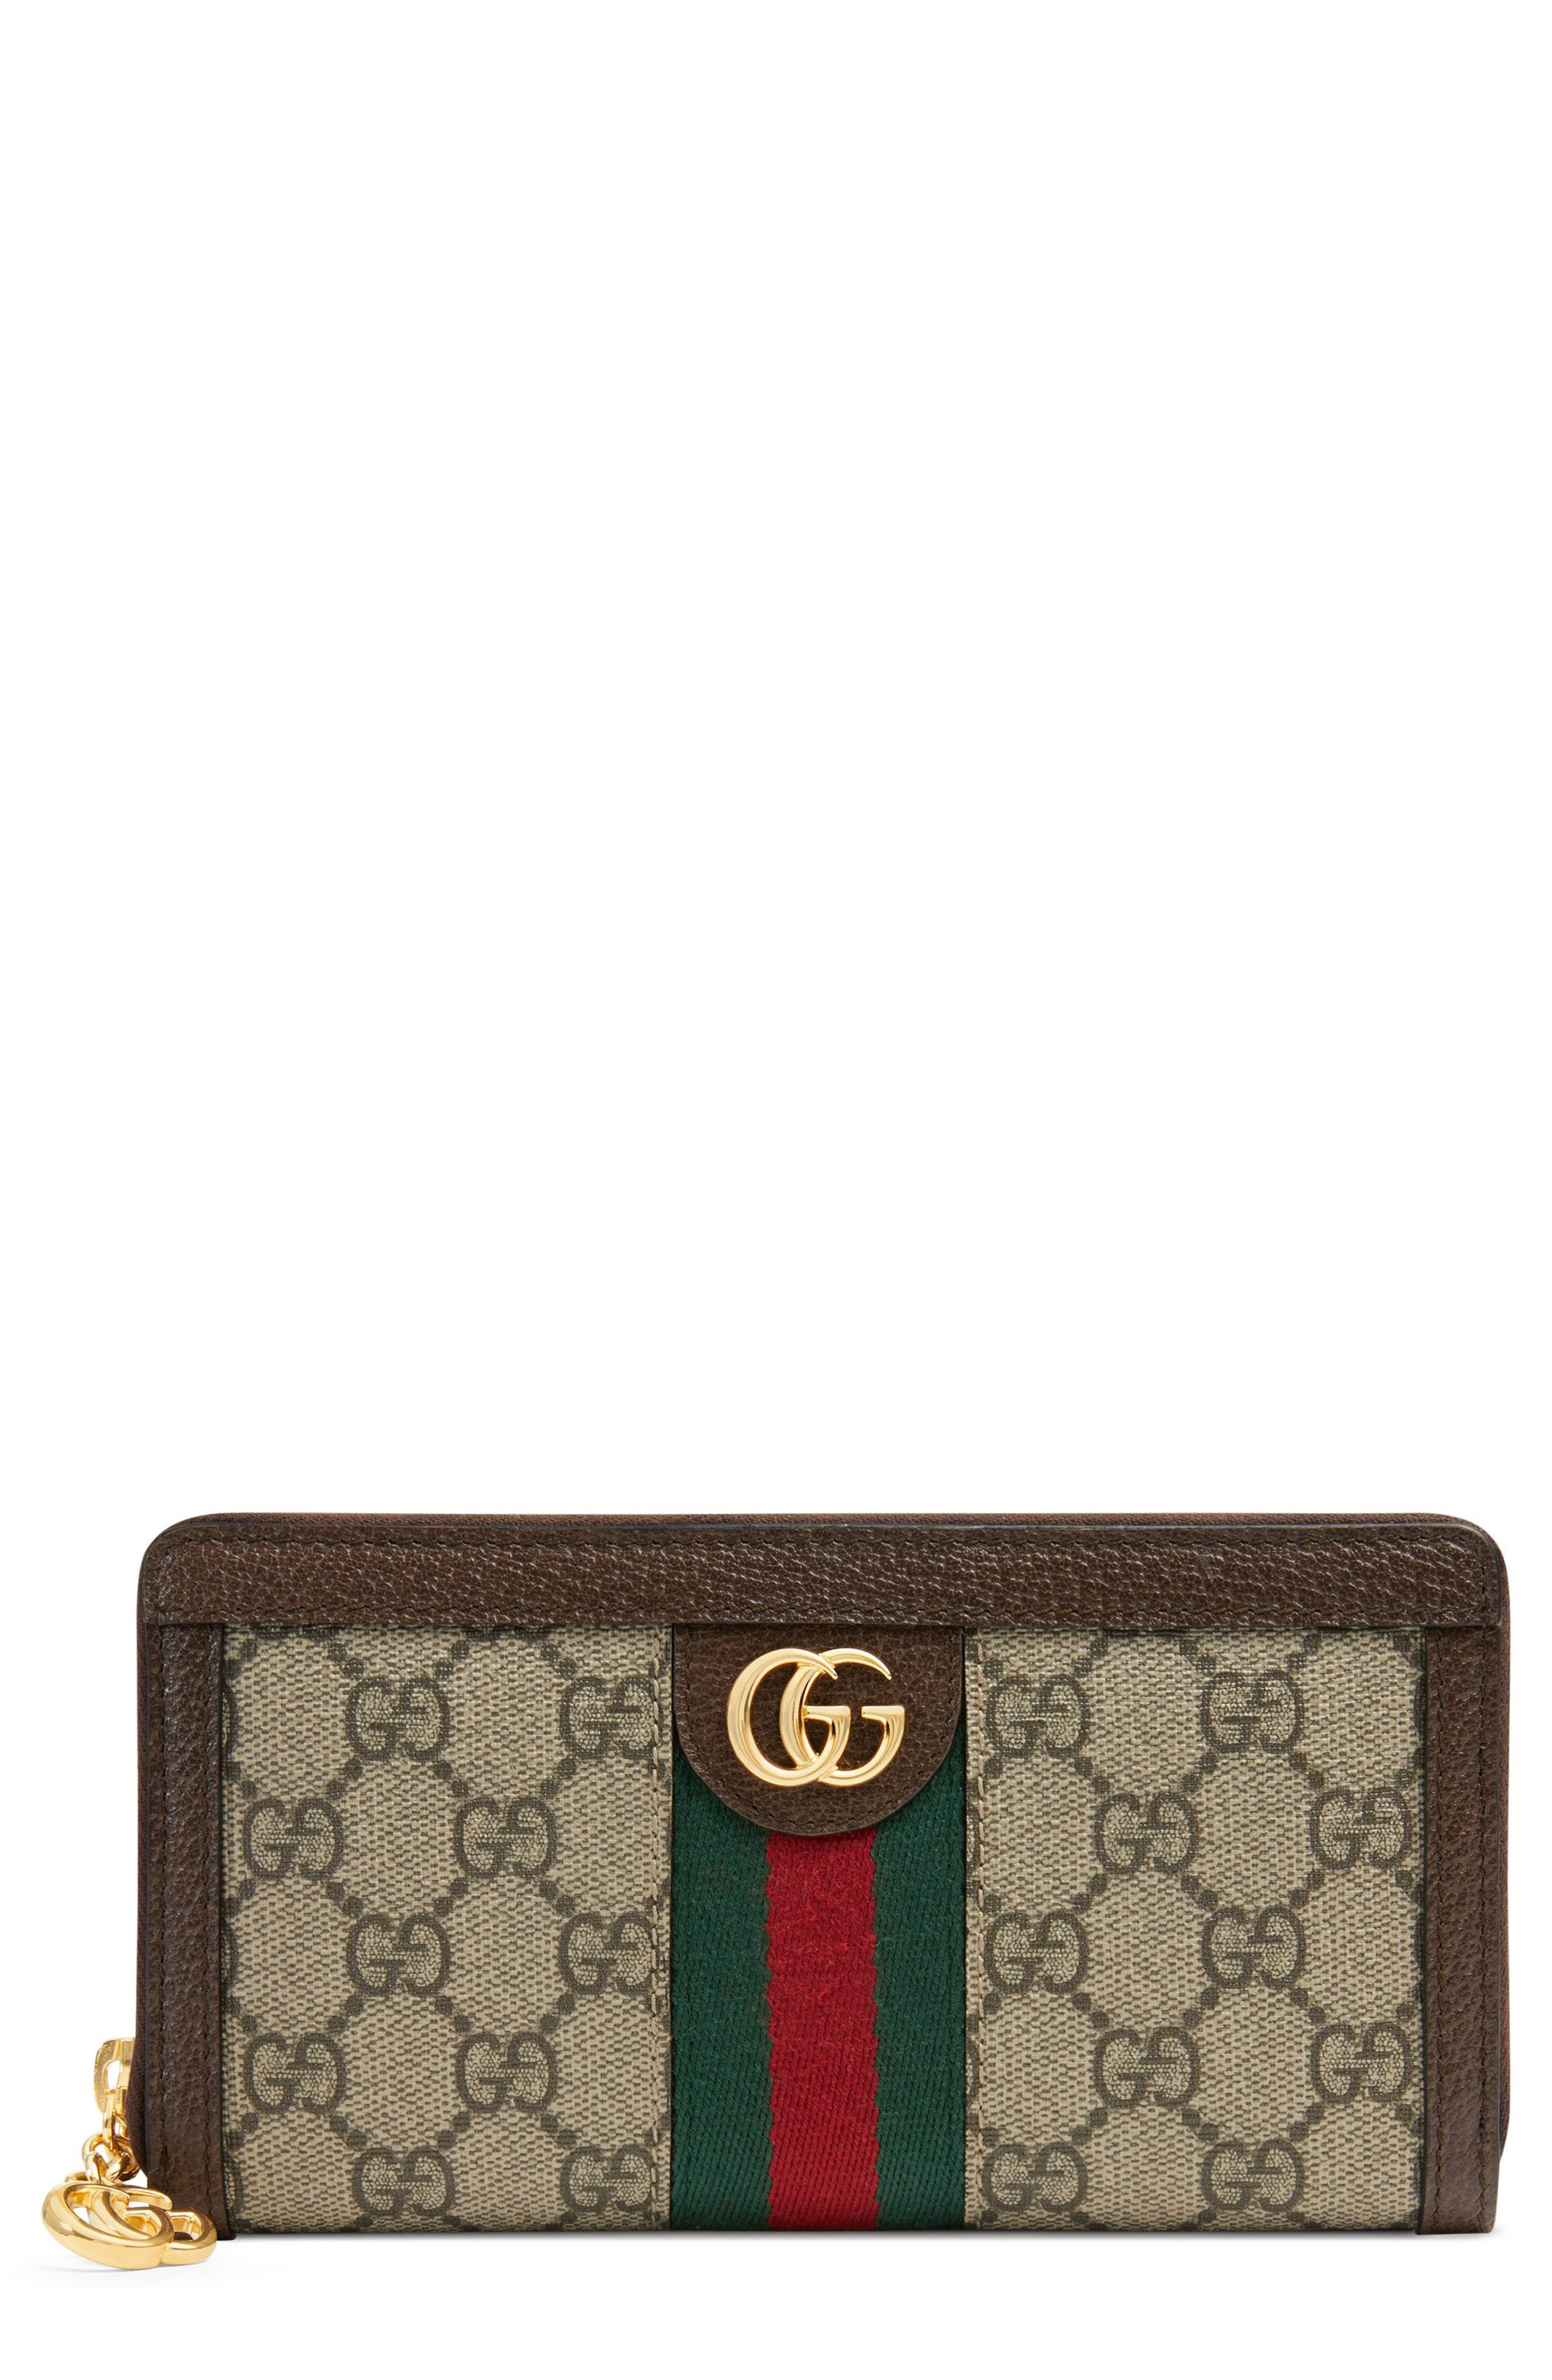 GUCCI, Ophidia GG Supreme Zip-Around Wallet, Main thumbnail 1, color, BEIGE EBONY/ ACERO/ VERT RED